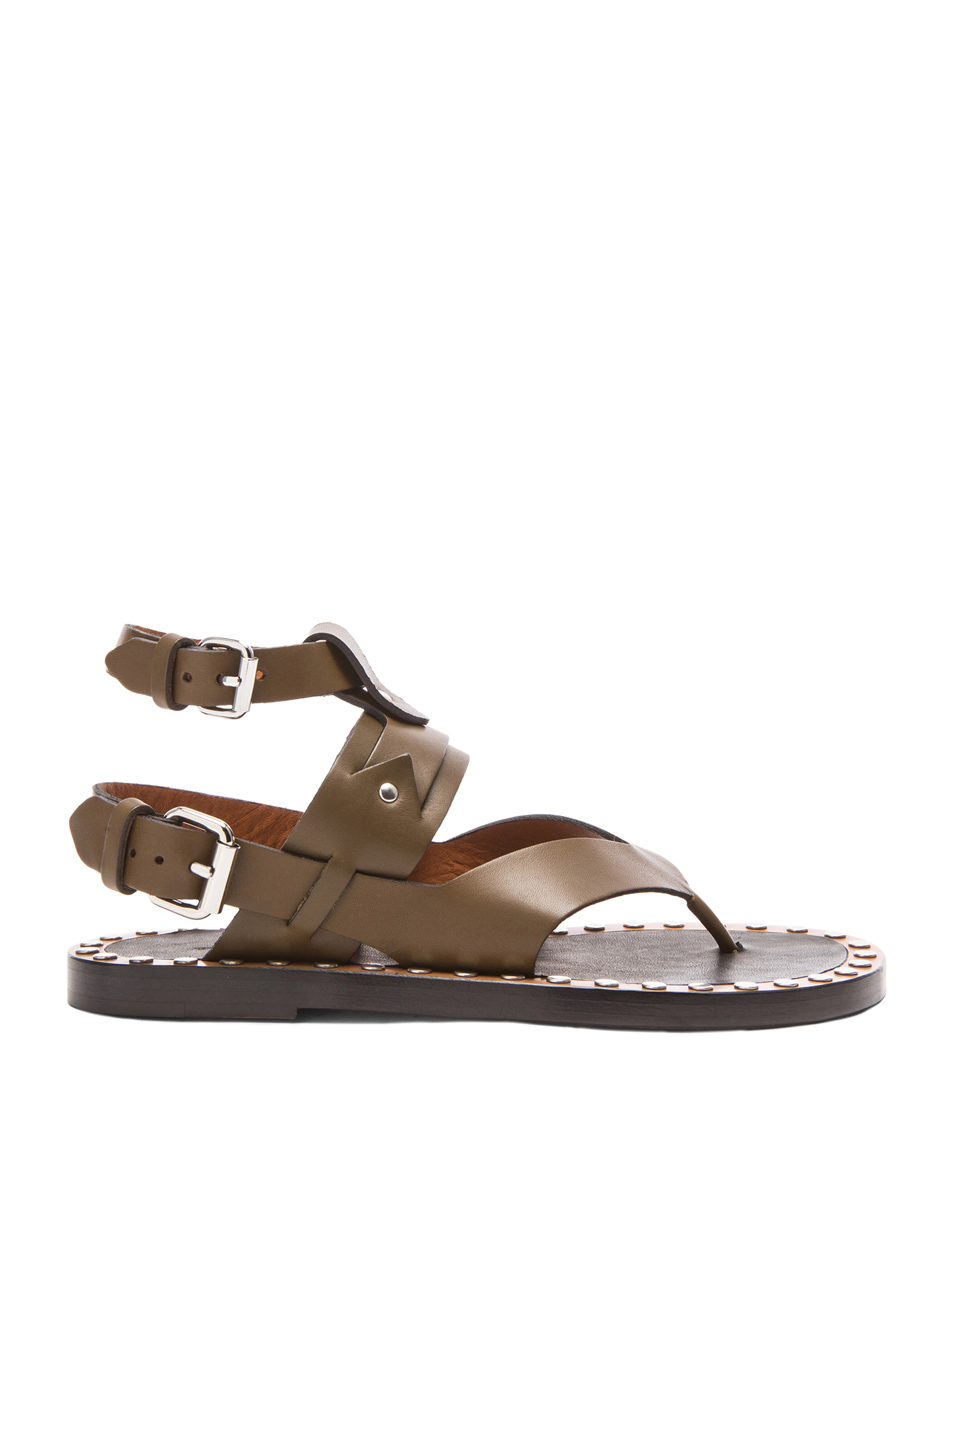 Isabel Marant Circus Maximus Leather Thong Sandals buy cheap footlocker cheap sale Cheapest with mastercard cheap price bVZbJjODR4